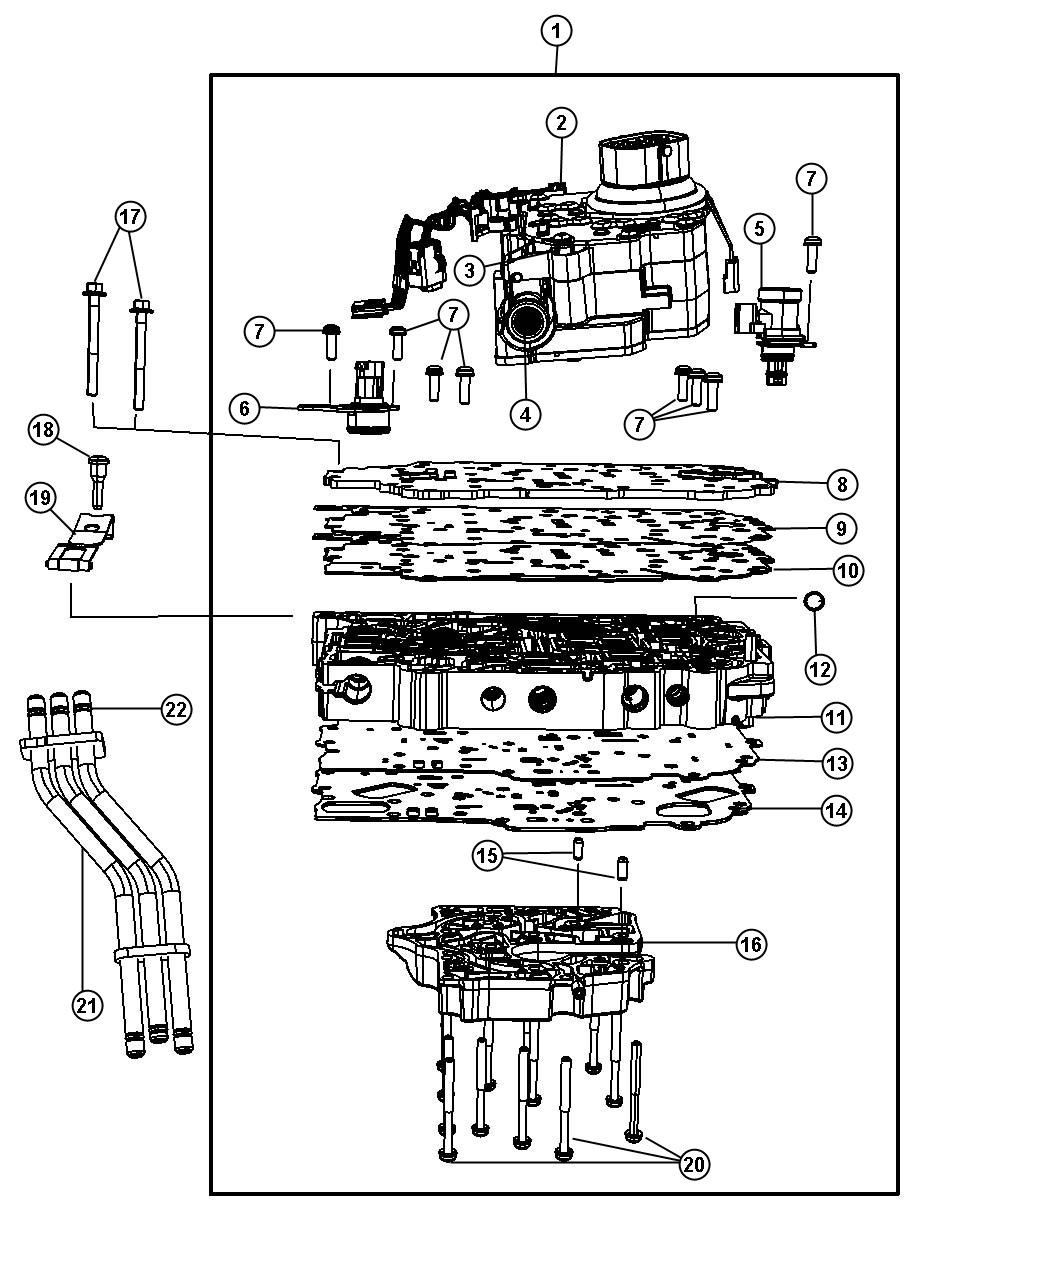 05 Tundra Wiring Diagram in addition Kia Sportage Wiring Diagram moreover Chrysler 300 Headlight Wiring Diagram together with 98 Dodge Trailer Wiring Diagram as well Ford F150 Subwoofer Diagram. on scion xb fuse box diagram